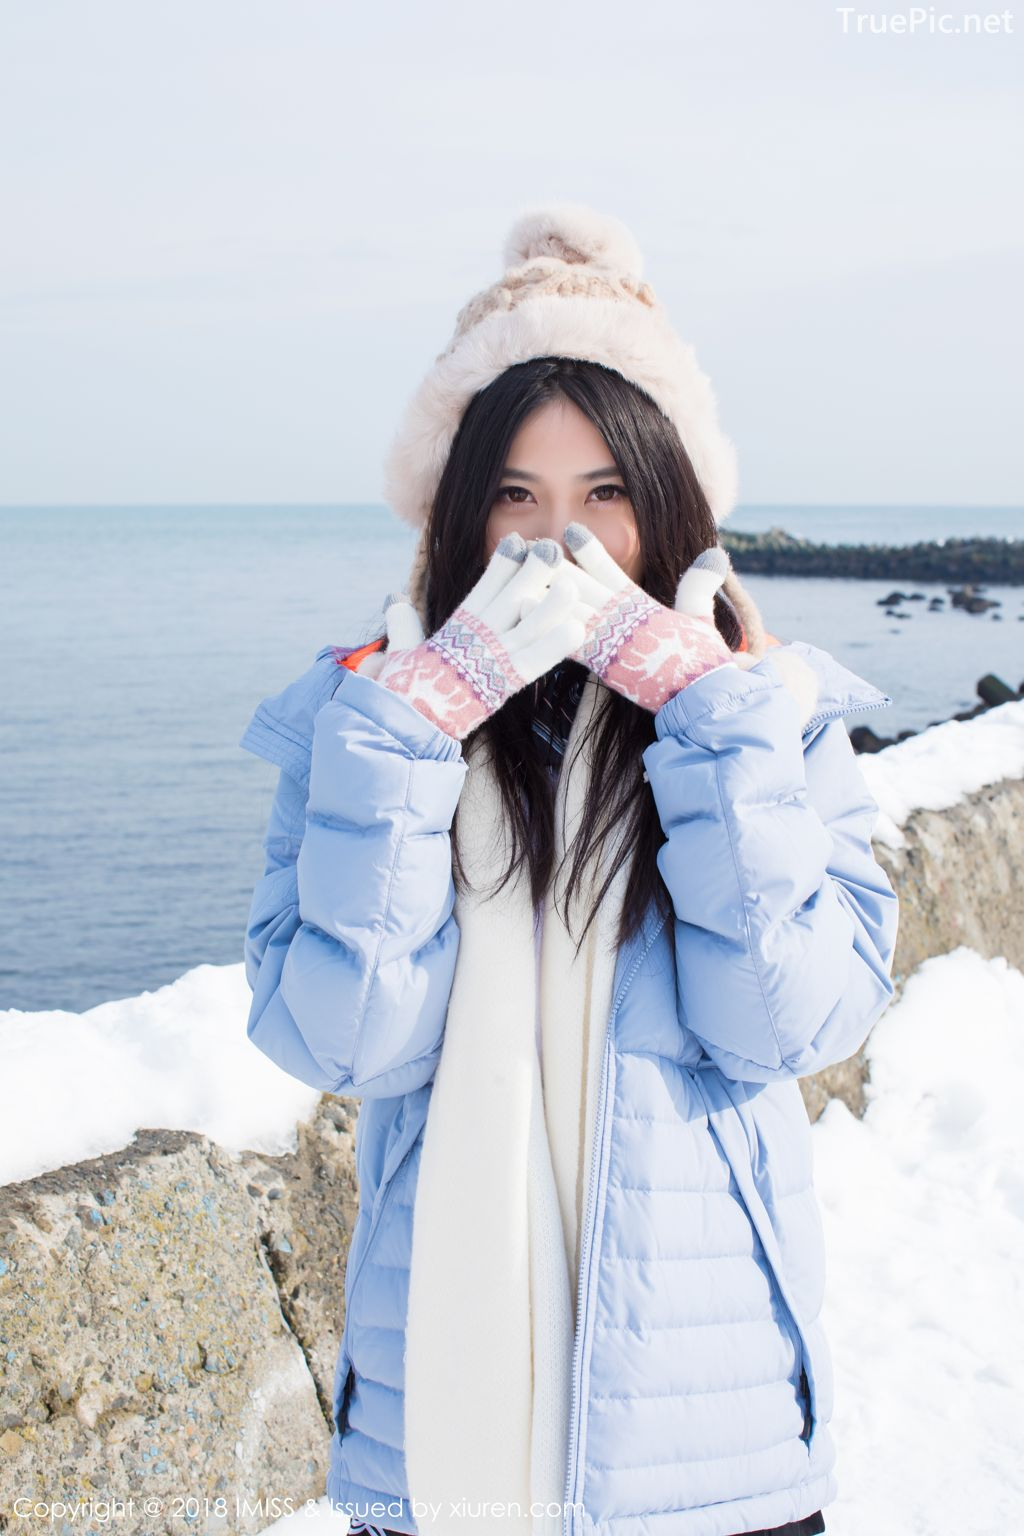 Image-IMISS-Vol.262-Sabrina model–Xu-Nuo-许诺-Sparkling-White-Snow-TruePic.net- Picture-7